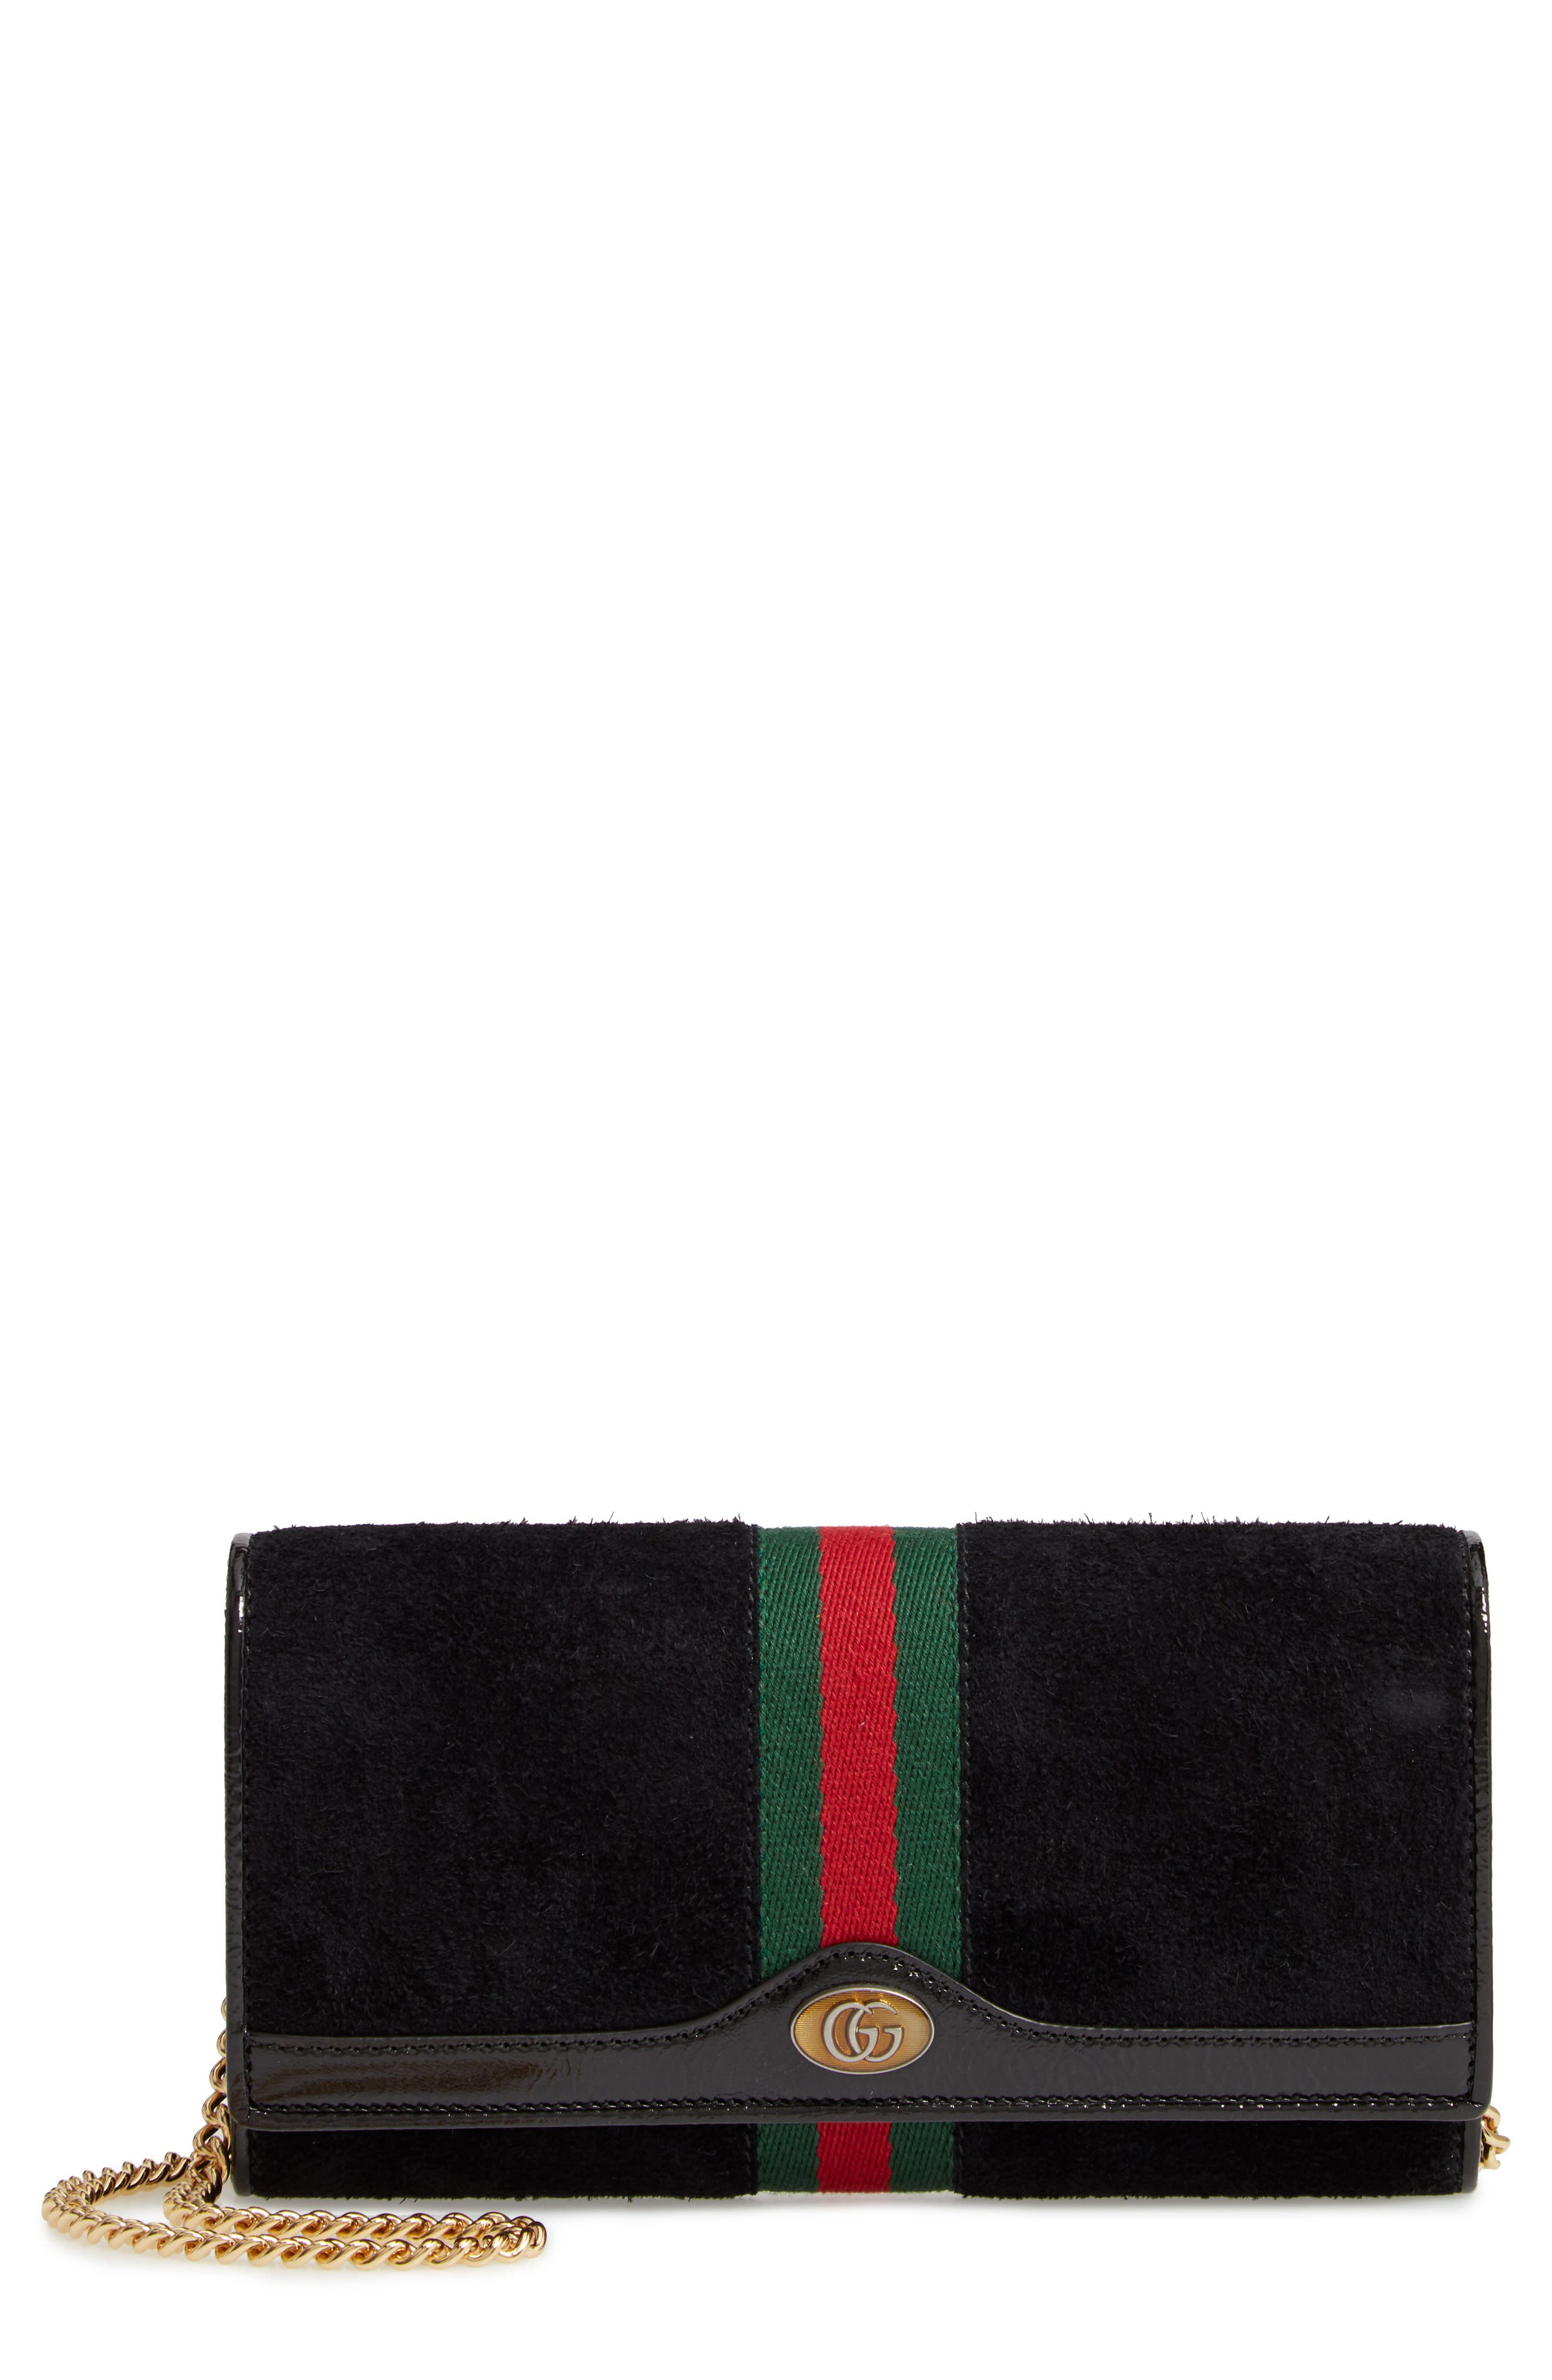 Ophidia Suede Continental Wallet, Main, color, NERO/ VERT/ RED